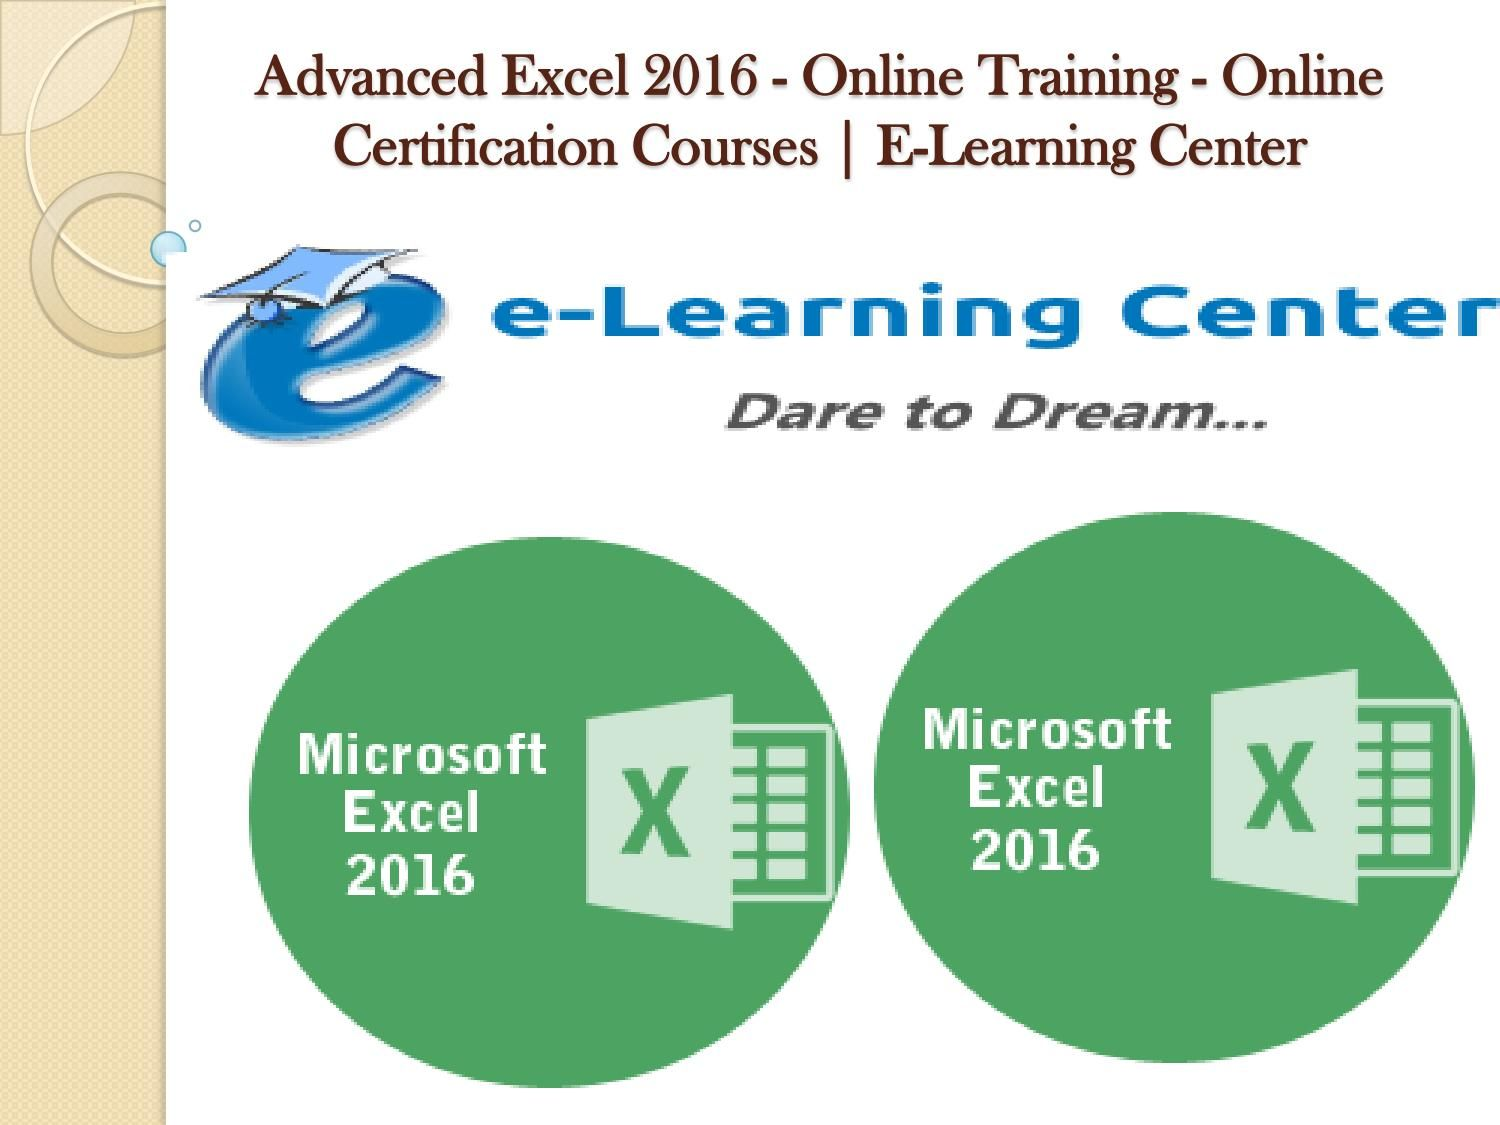 Advanced Excel 2016 Online Training Online Certification Courses